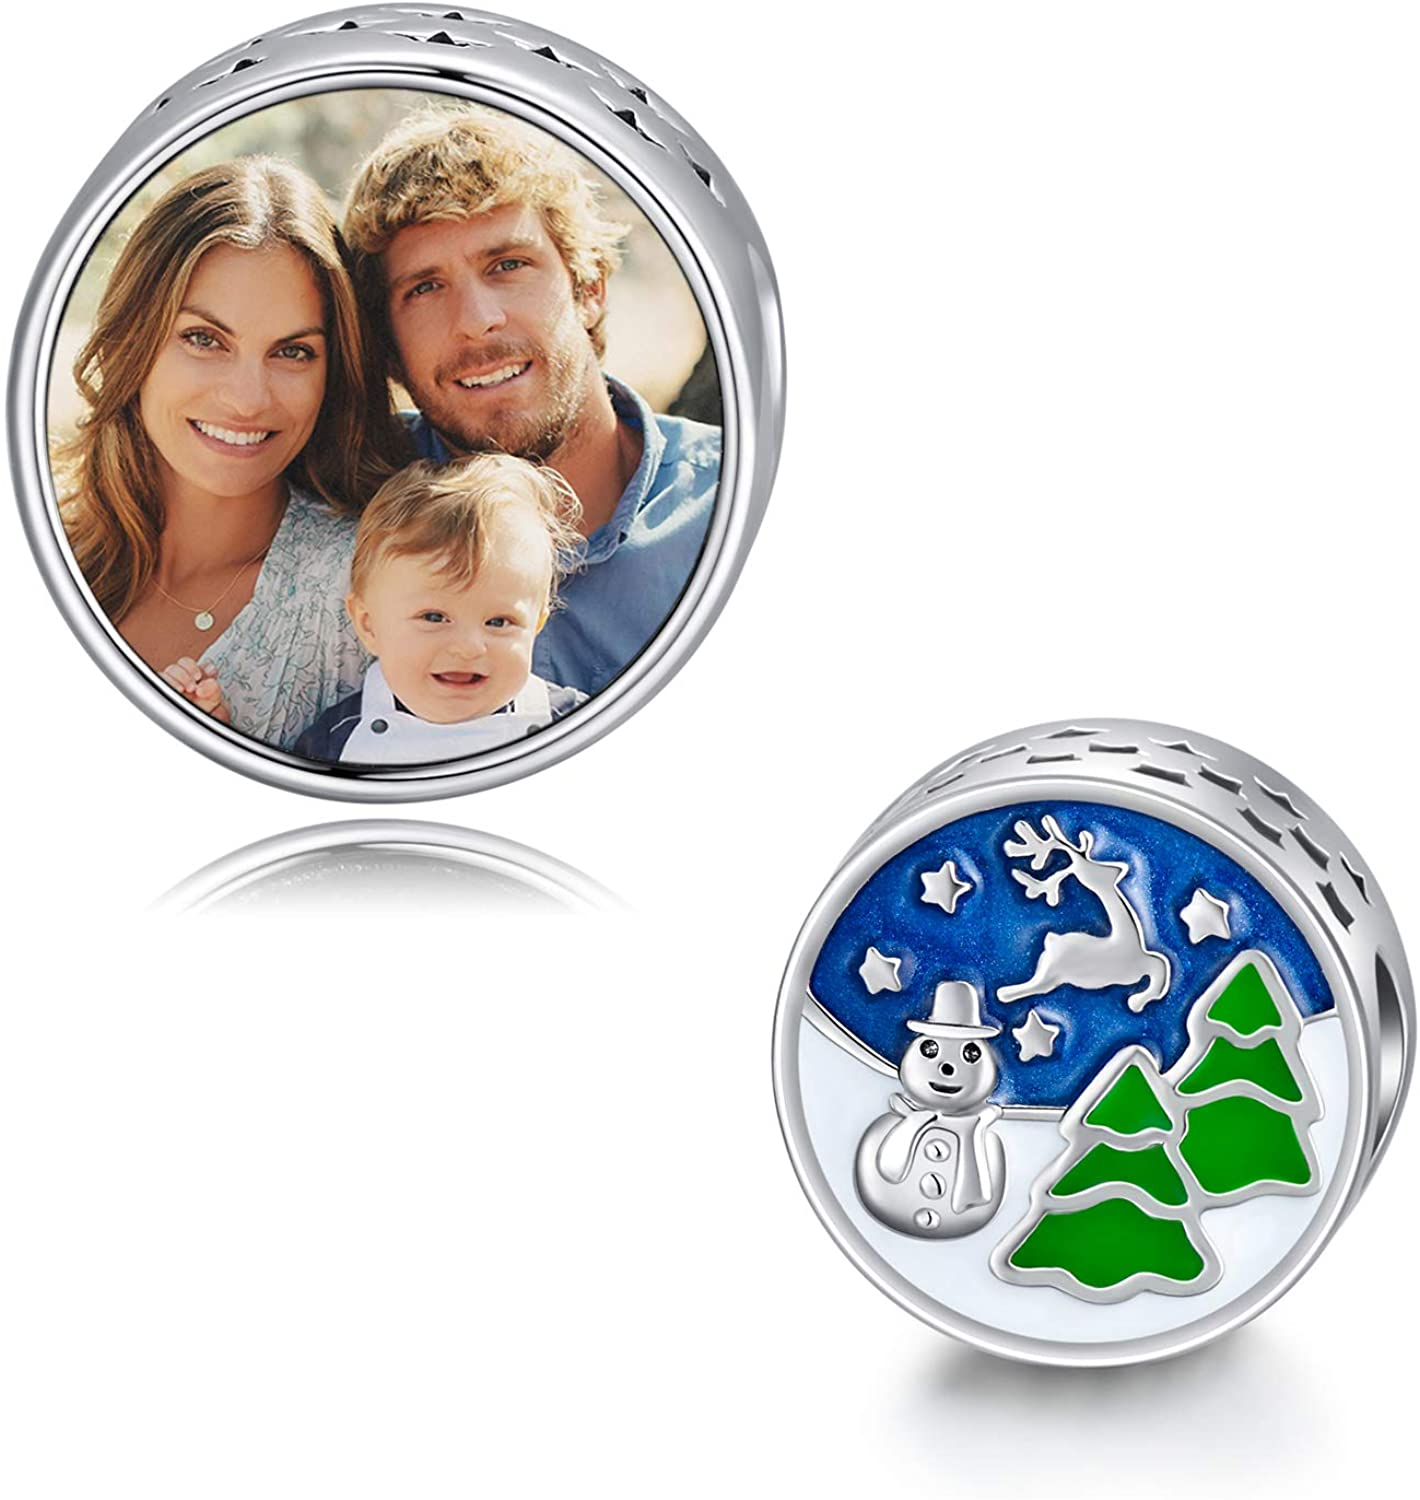 LONAGO Merry Christmas Photo Charm Sterling Silver Personalized Picture Charm Fit Pandora Bracelet Necklace Customized Image Bead Gifts for Women